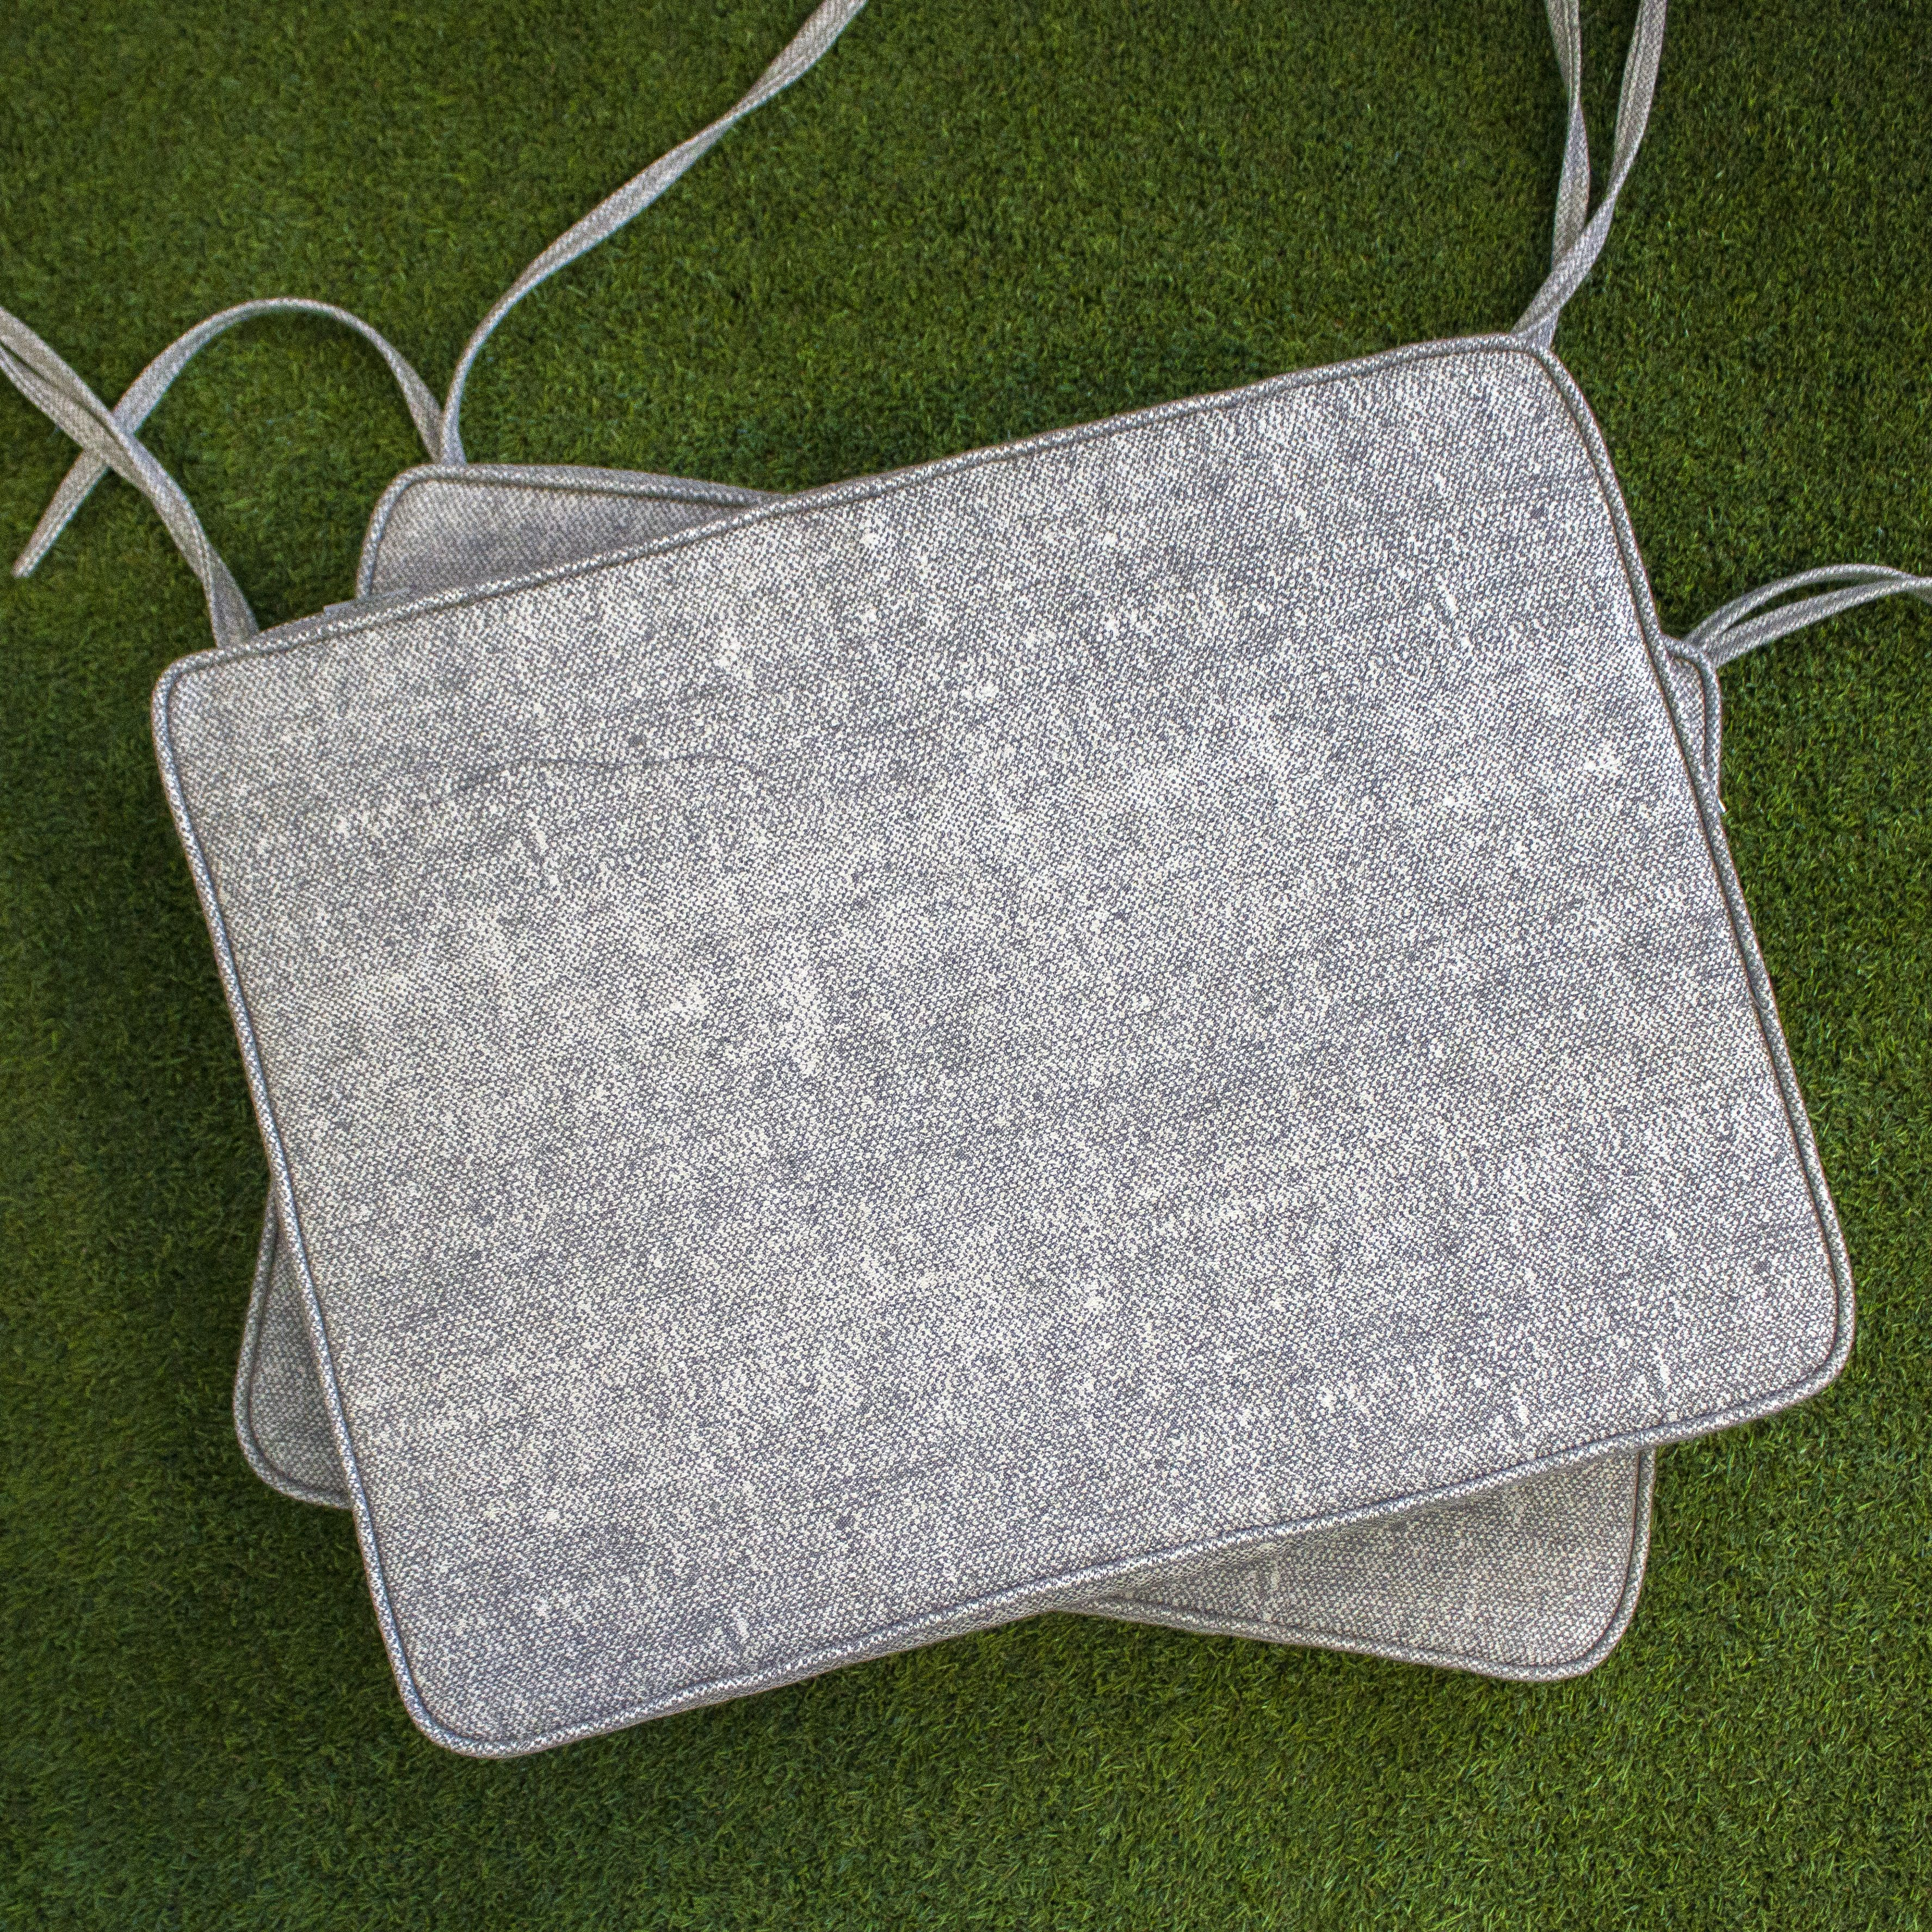 Custom Grey Outdoor Chair Cushions Made With Sunbrella